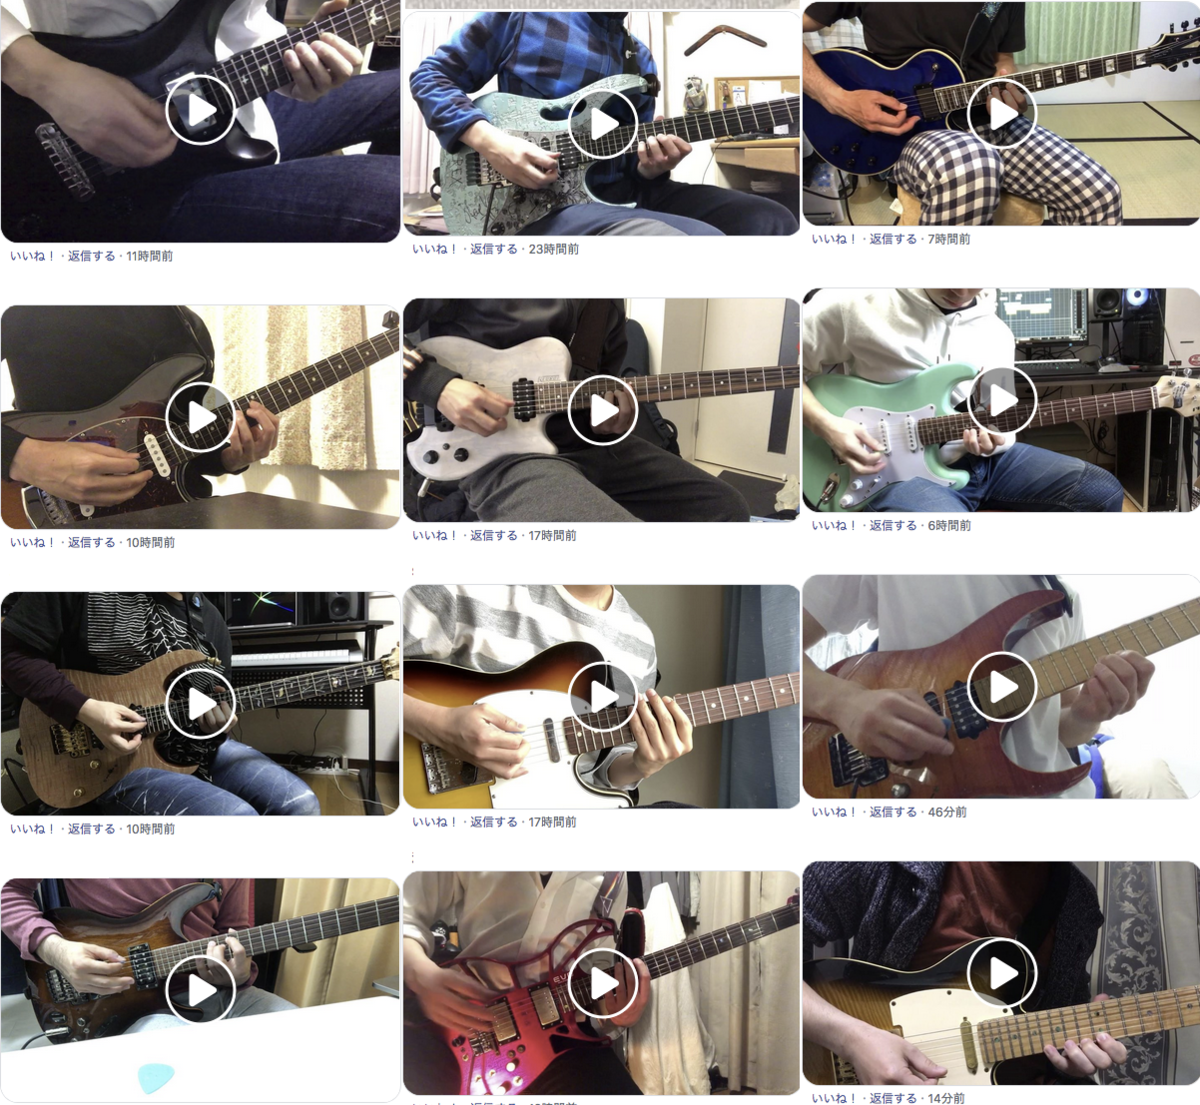 f:id:totalguitarmethod:20190906085645p:plain